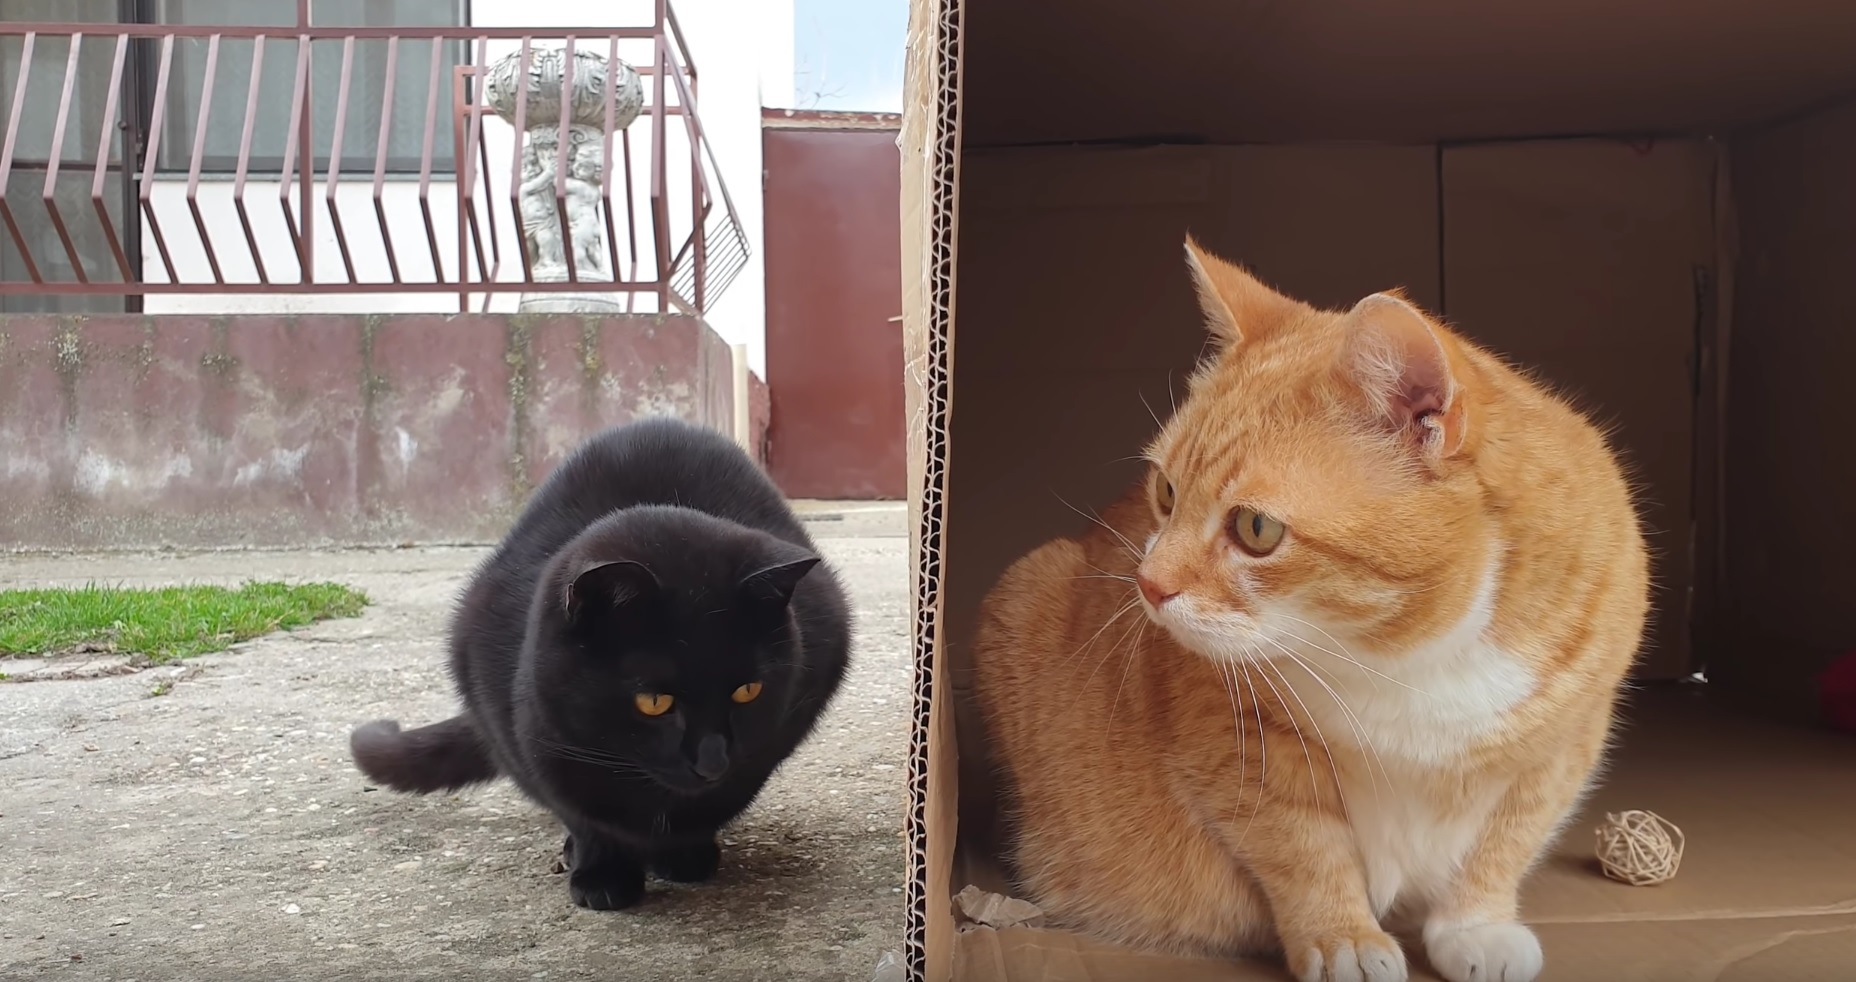 Cute Cats Play In Cardboard Box